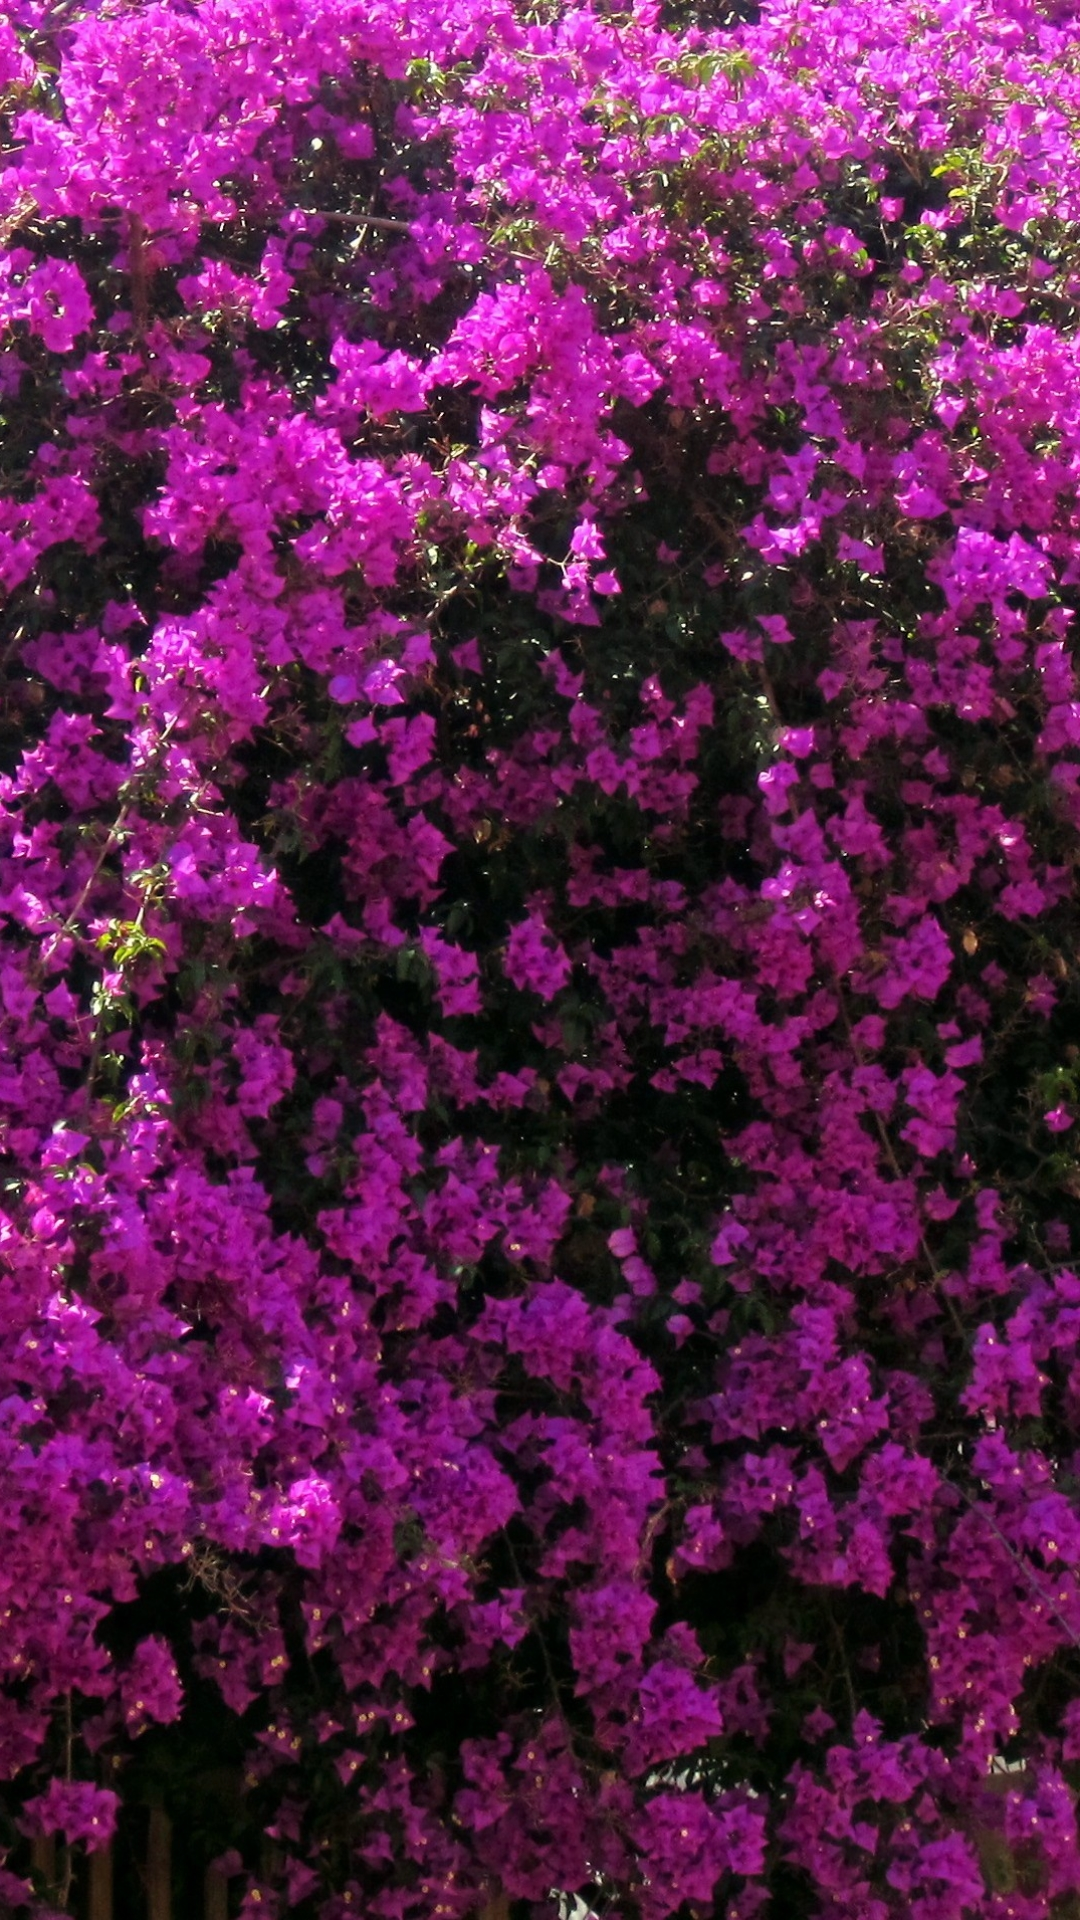 Bougainvillea Wallpaper Earth Bougainvillea 1080x1920 Wallpaper Id 709651 Mobile Abyss